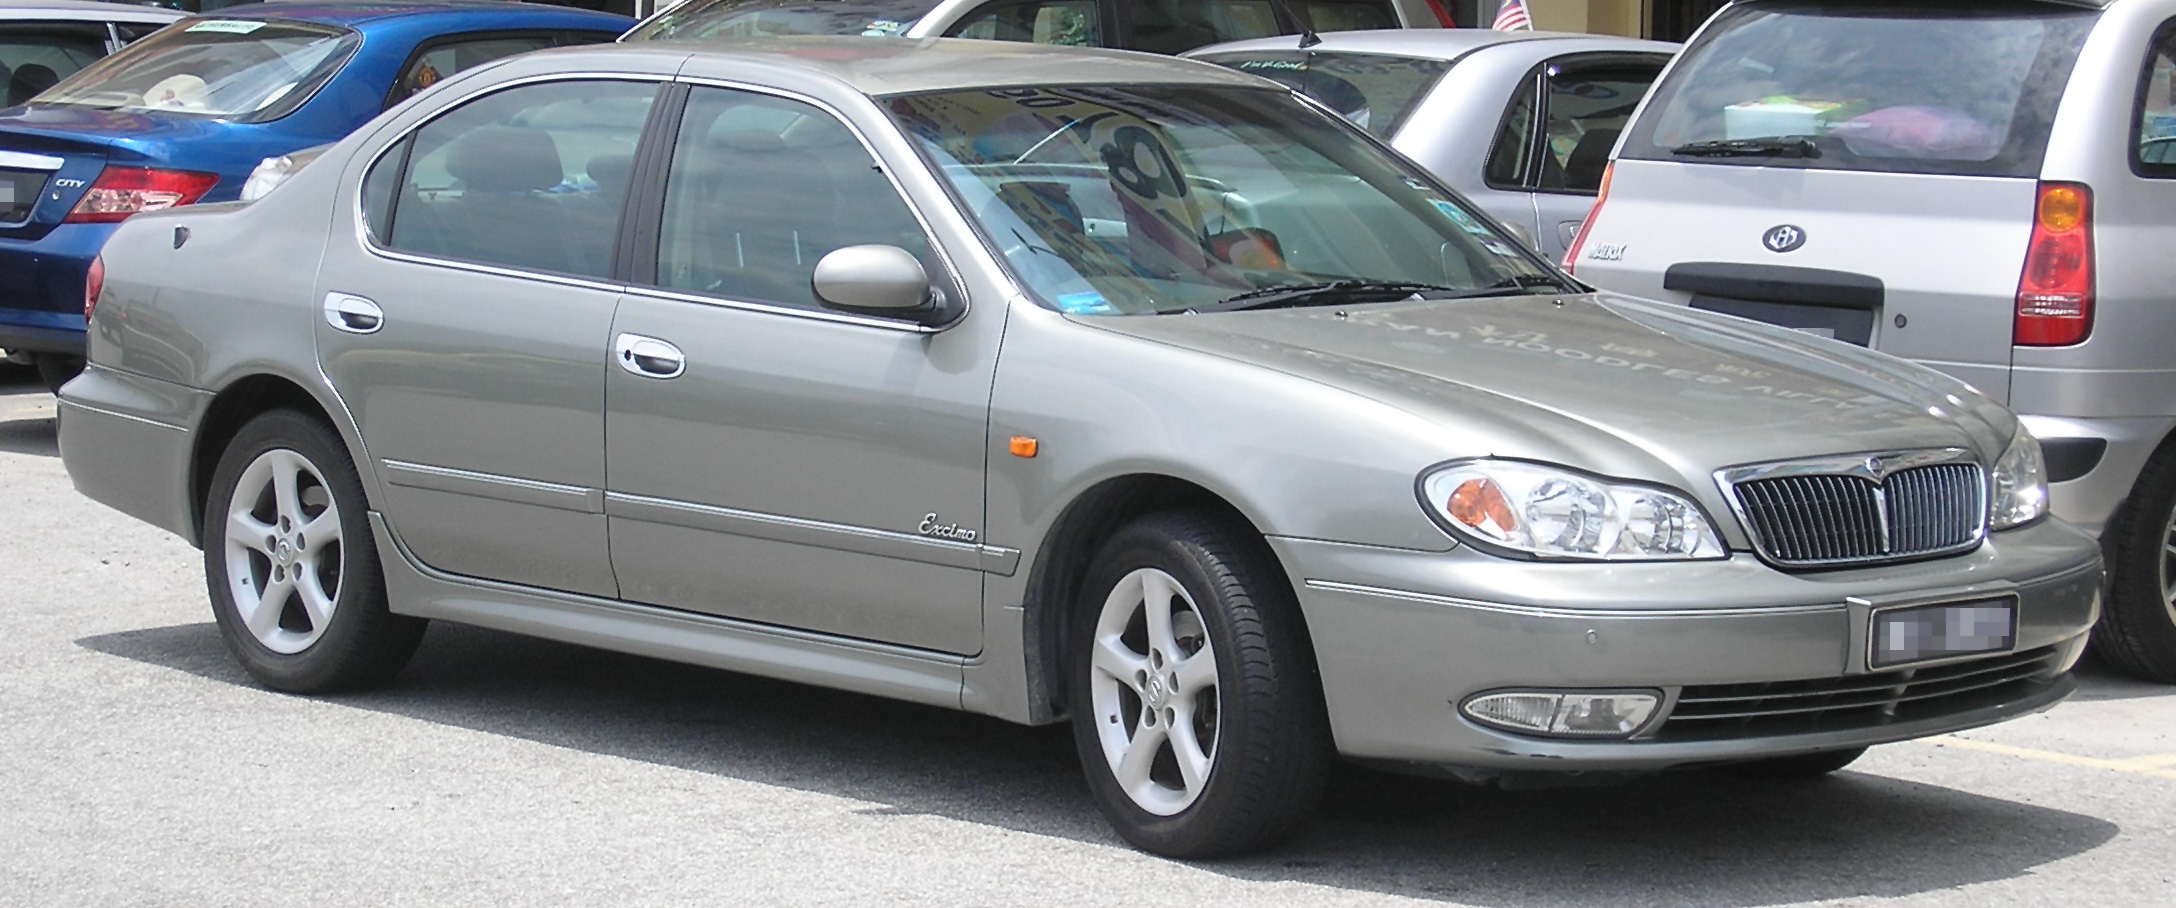 First Generation Nissan Cefiro